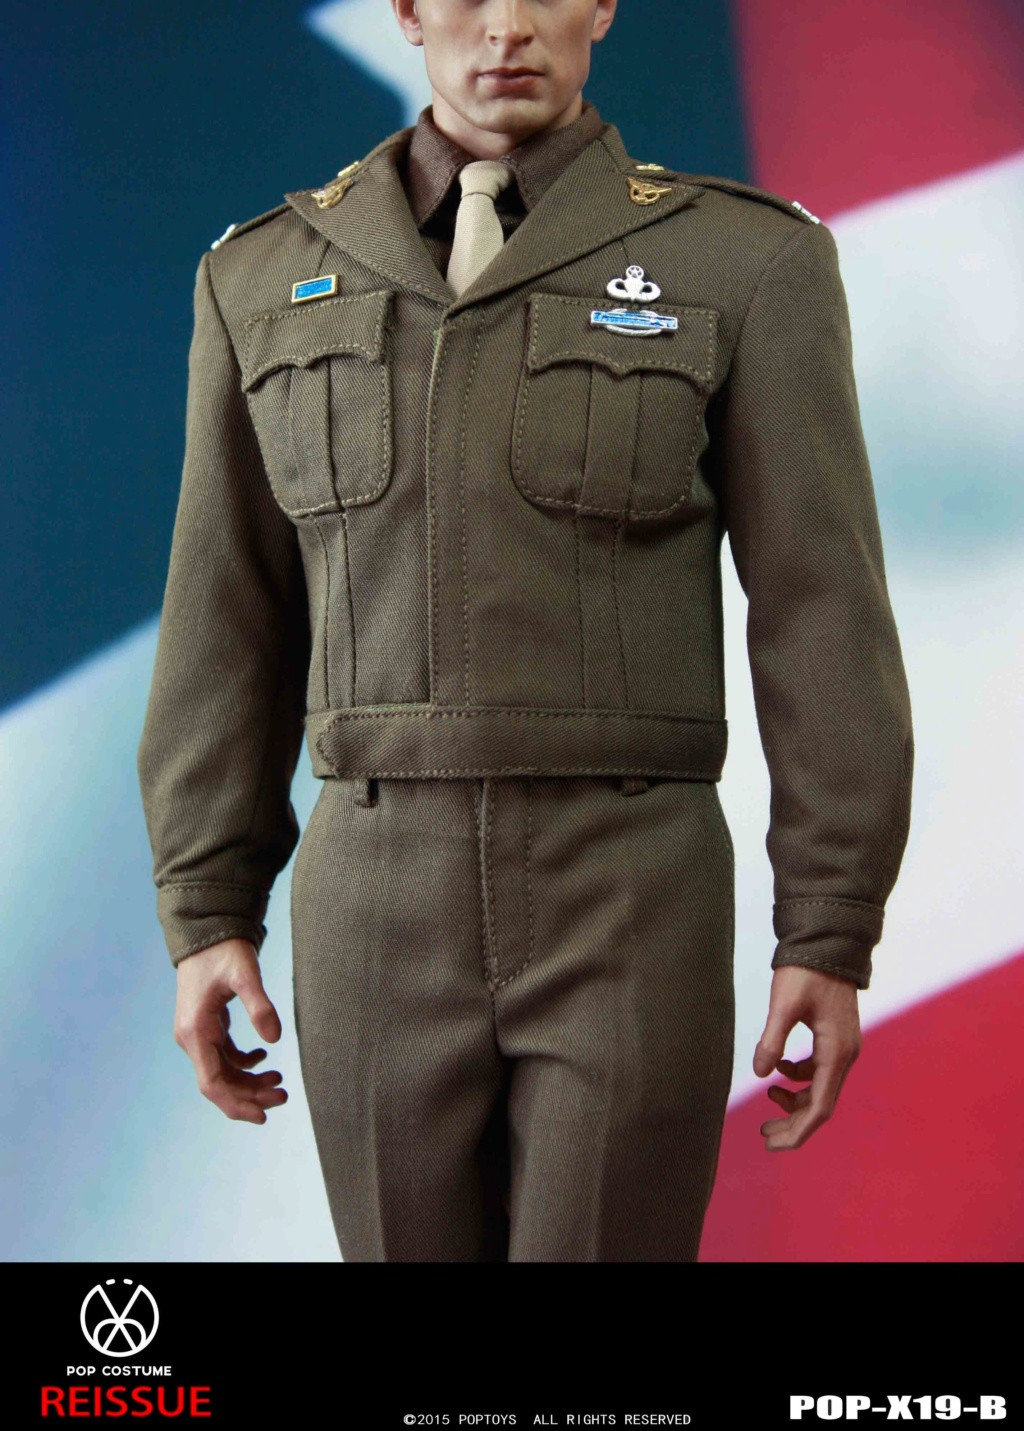 male - NEW PRODUCT: POPTOYS: 1/6 Series X19 - World War II Golden Age US Army Uniform Uniform Set - B (Reprinted in 2019) 21302110